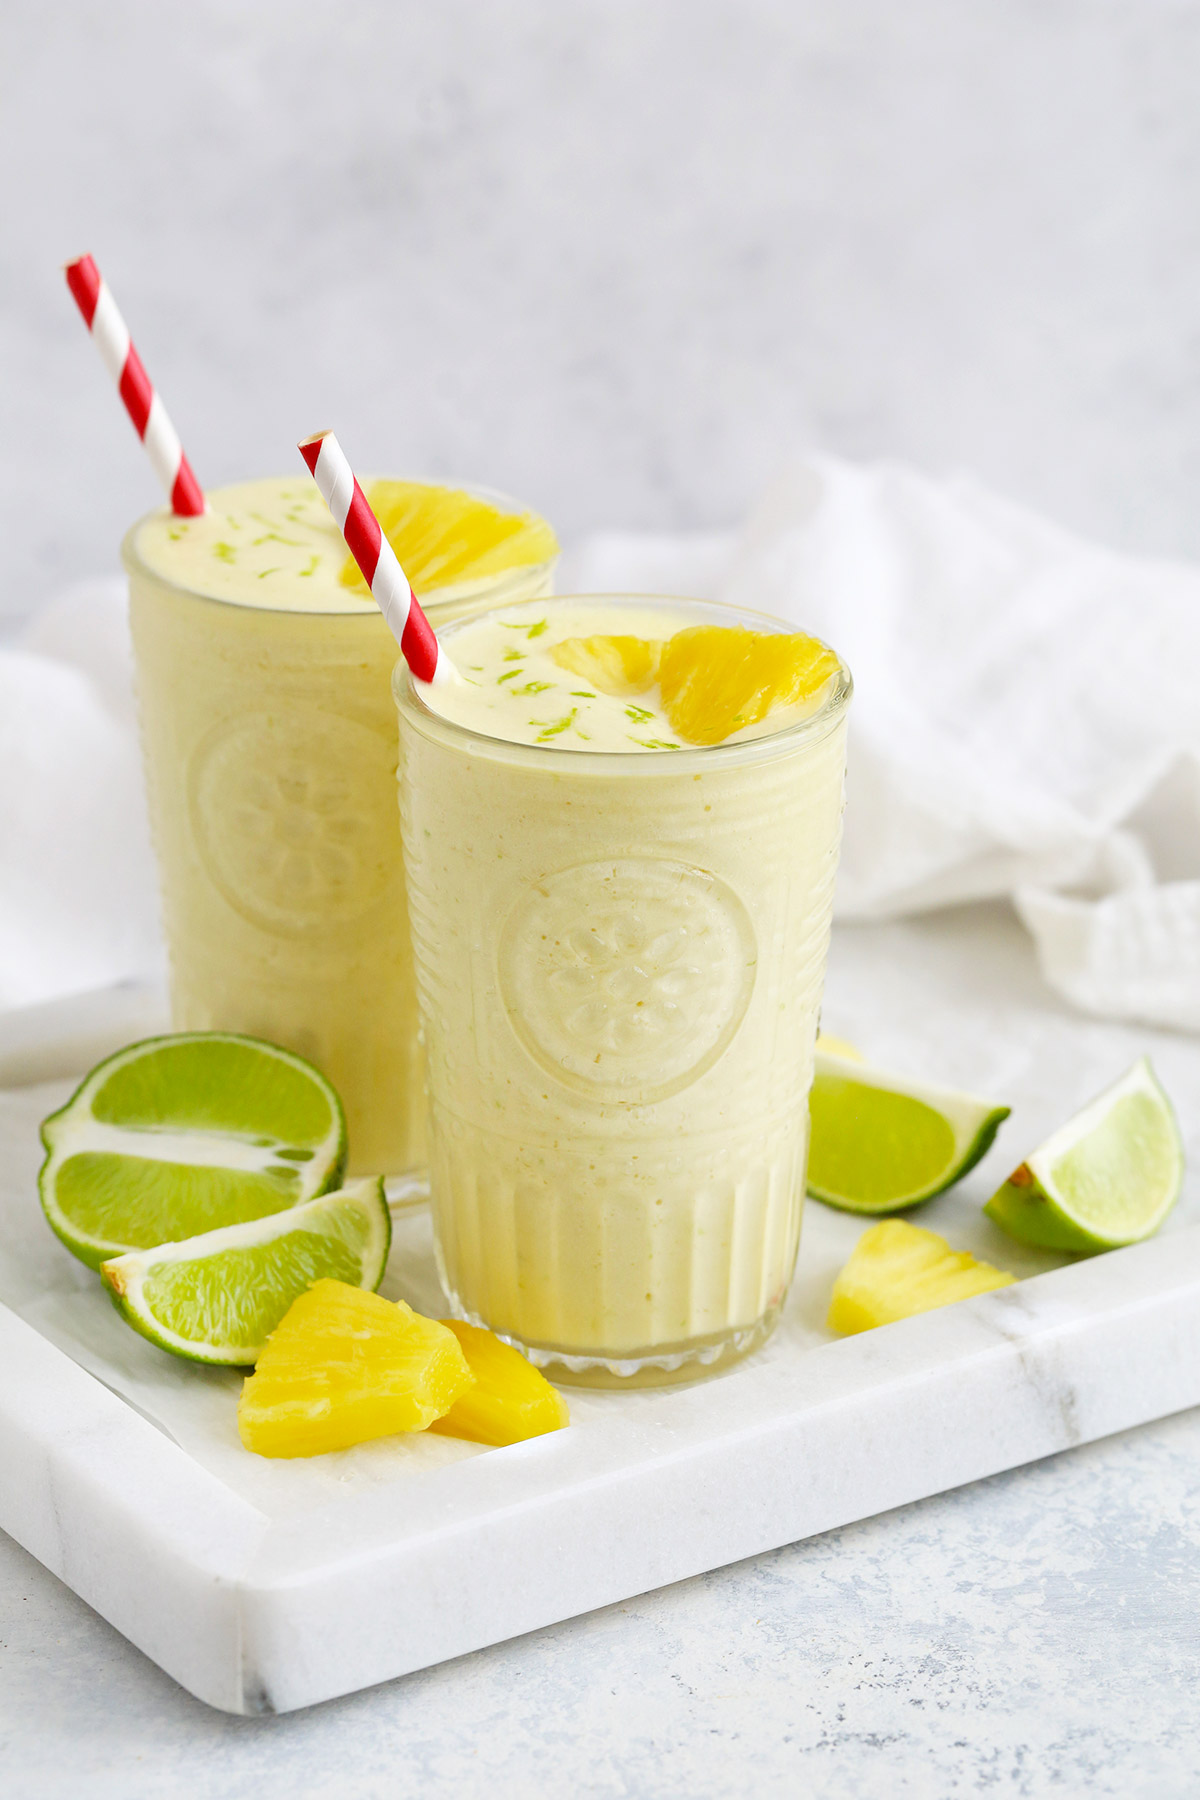 Paleo or Vegan Pineapple Coconut Lime Smoothie from One Lovely Life